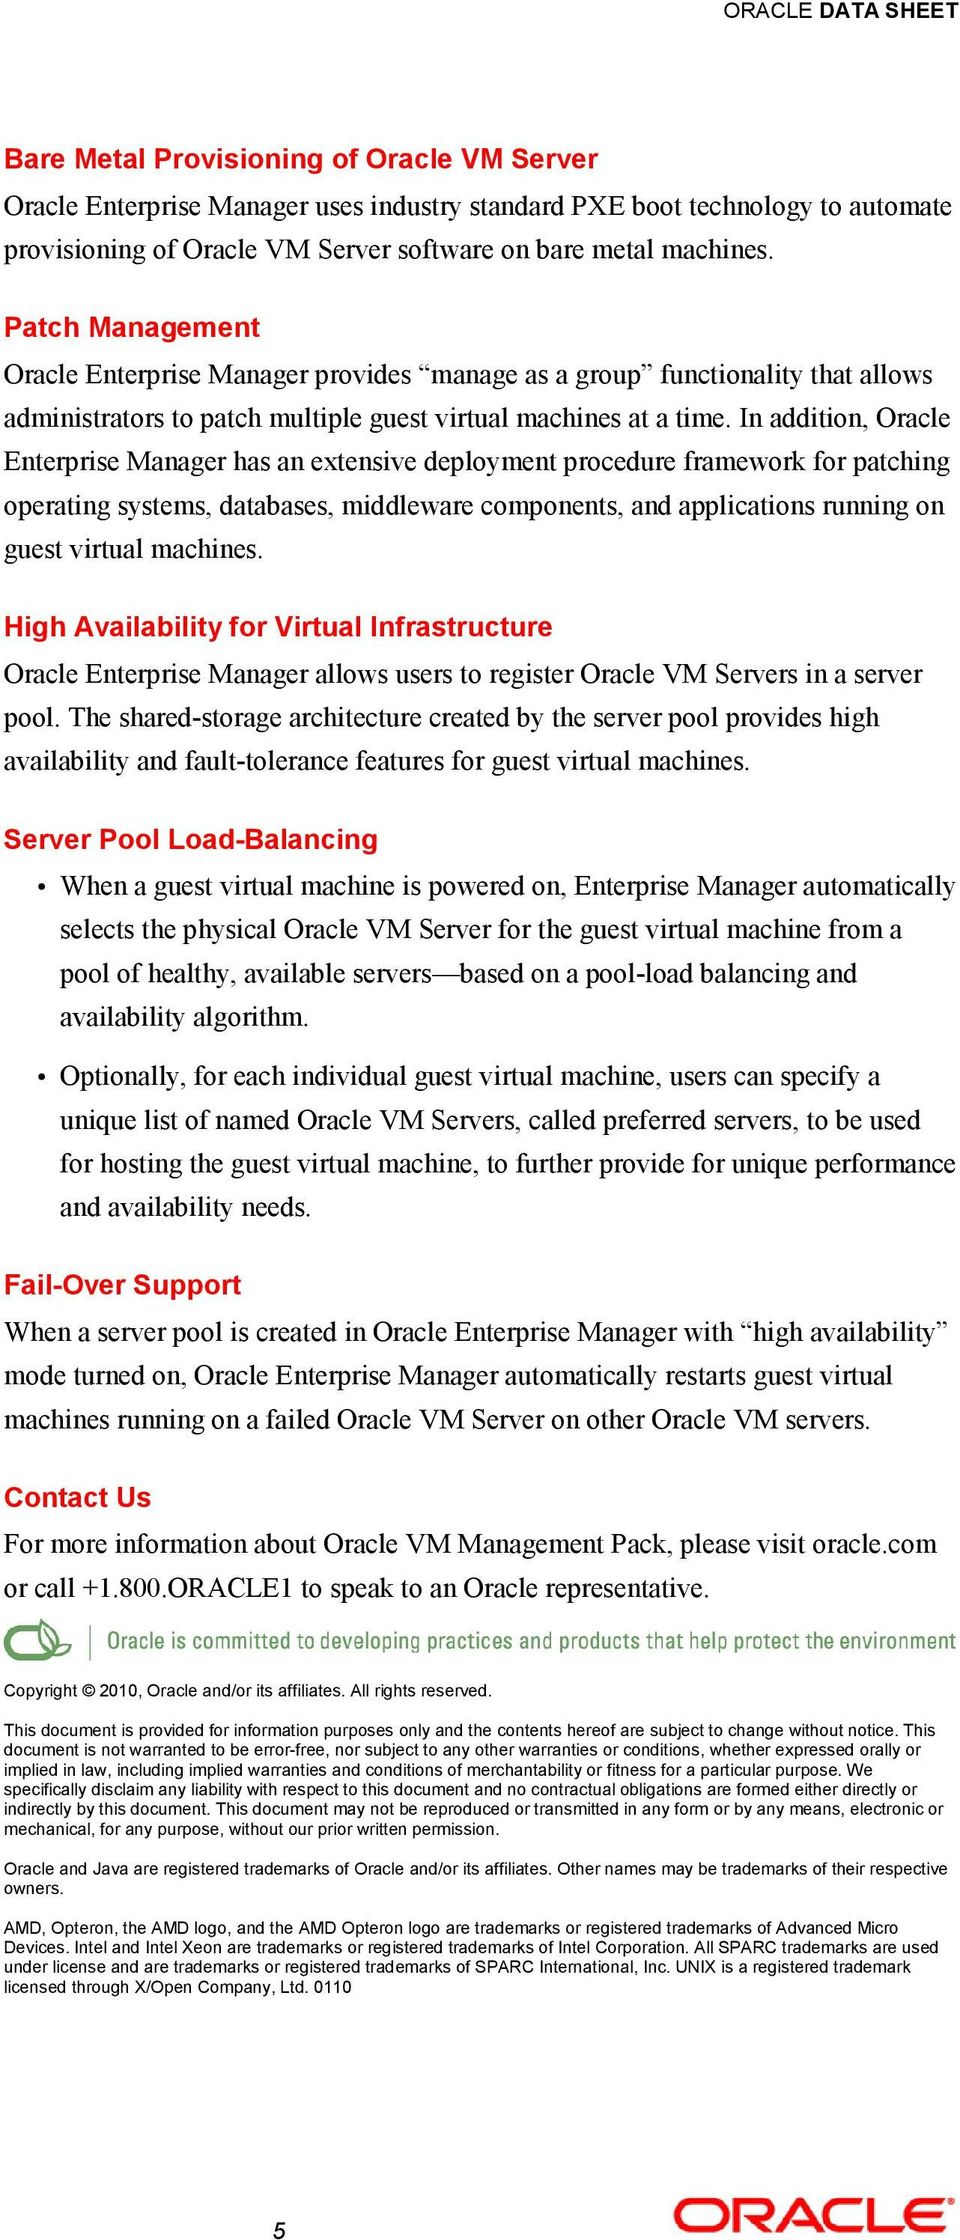 In addition, Oracle Enterprise Manager has an extensive deployment procedure framework for patching operating systems, databases, middleware components, and applications running on guest virtual